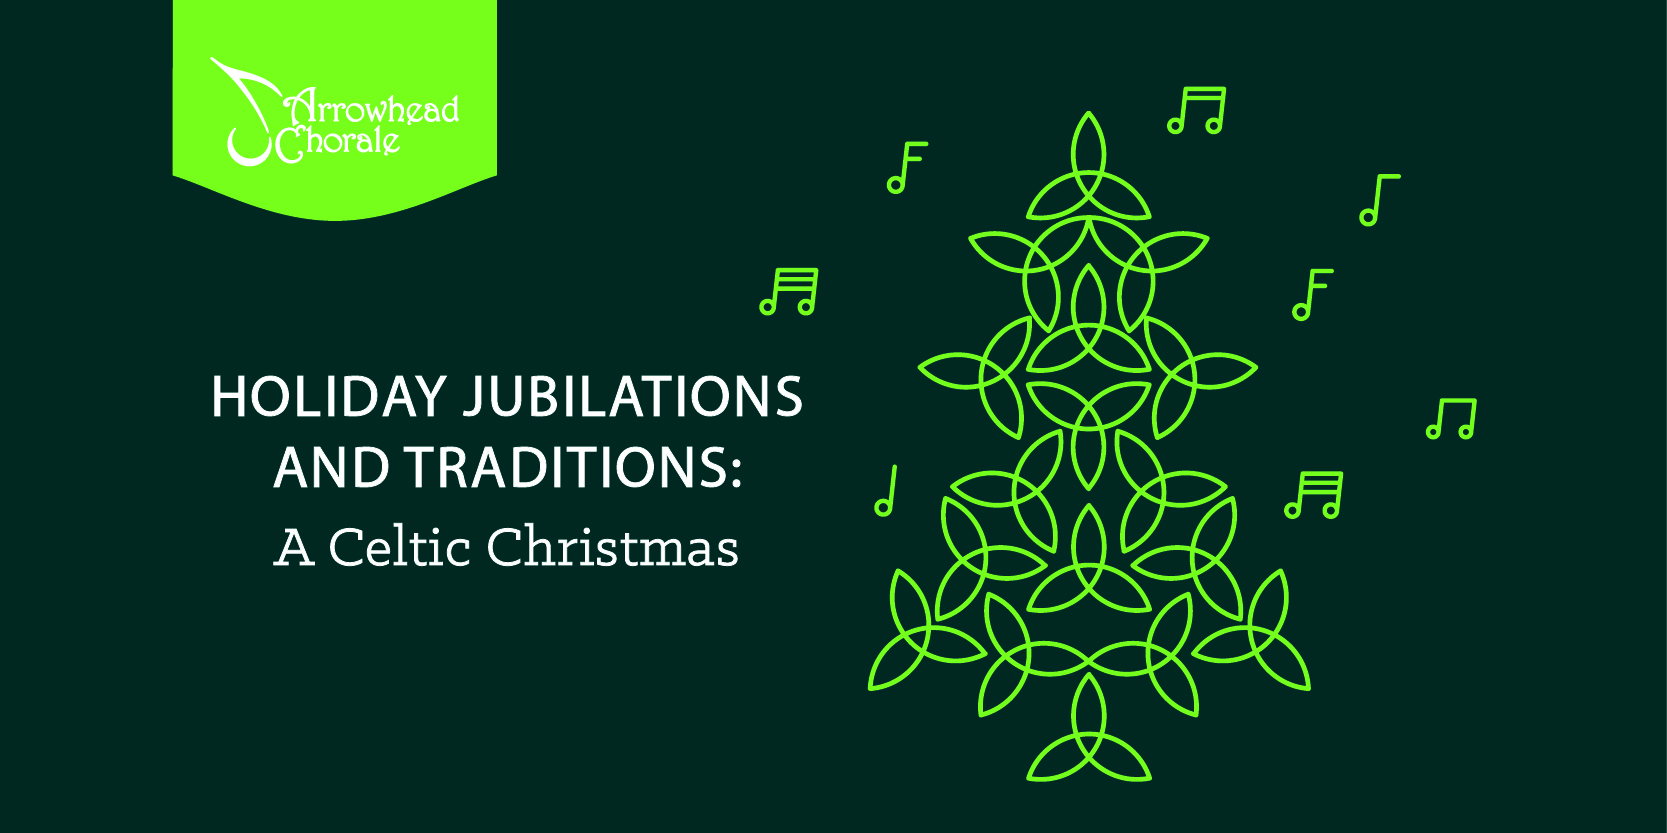 Holiday Jubilations and Traditions